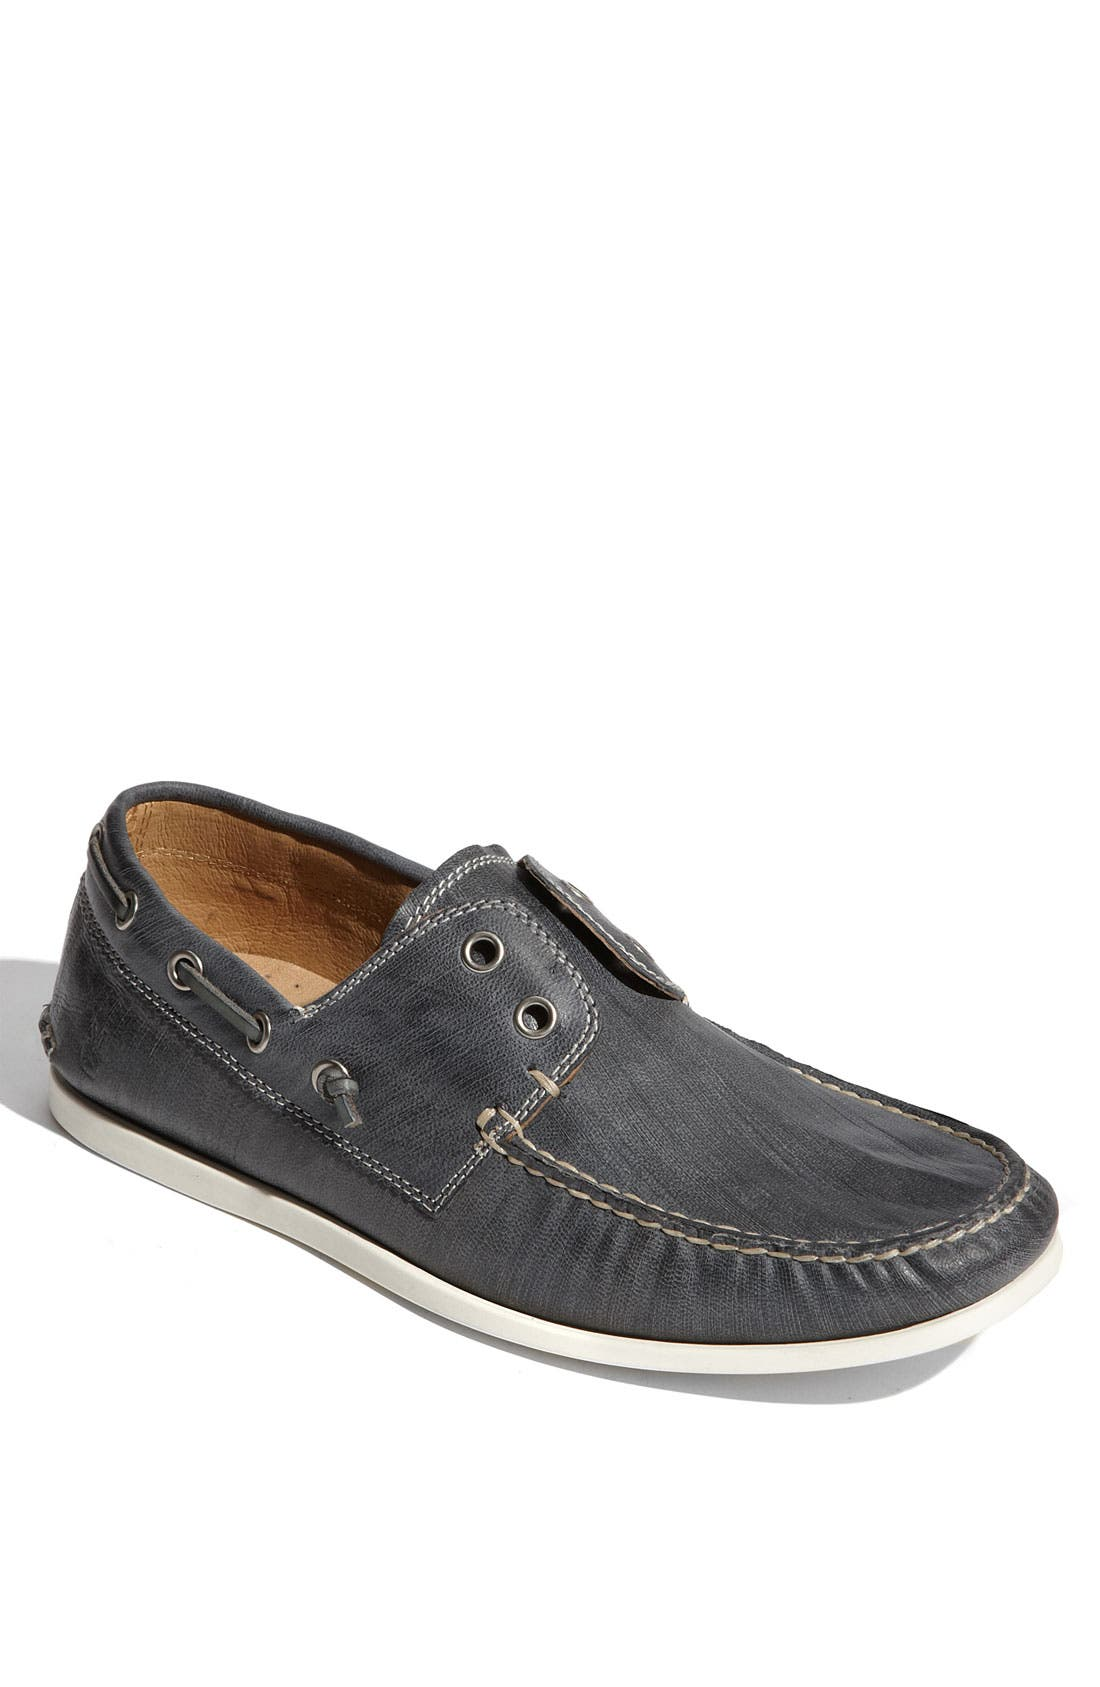 Alternate Image 1 Selected - John Varvatos Star USA 'Schooner' Boat Shoe